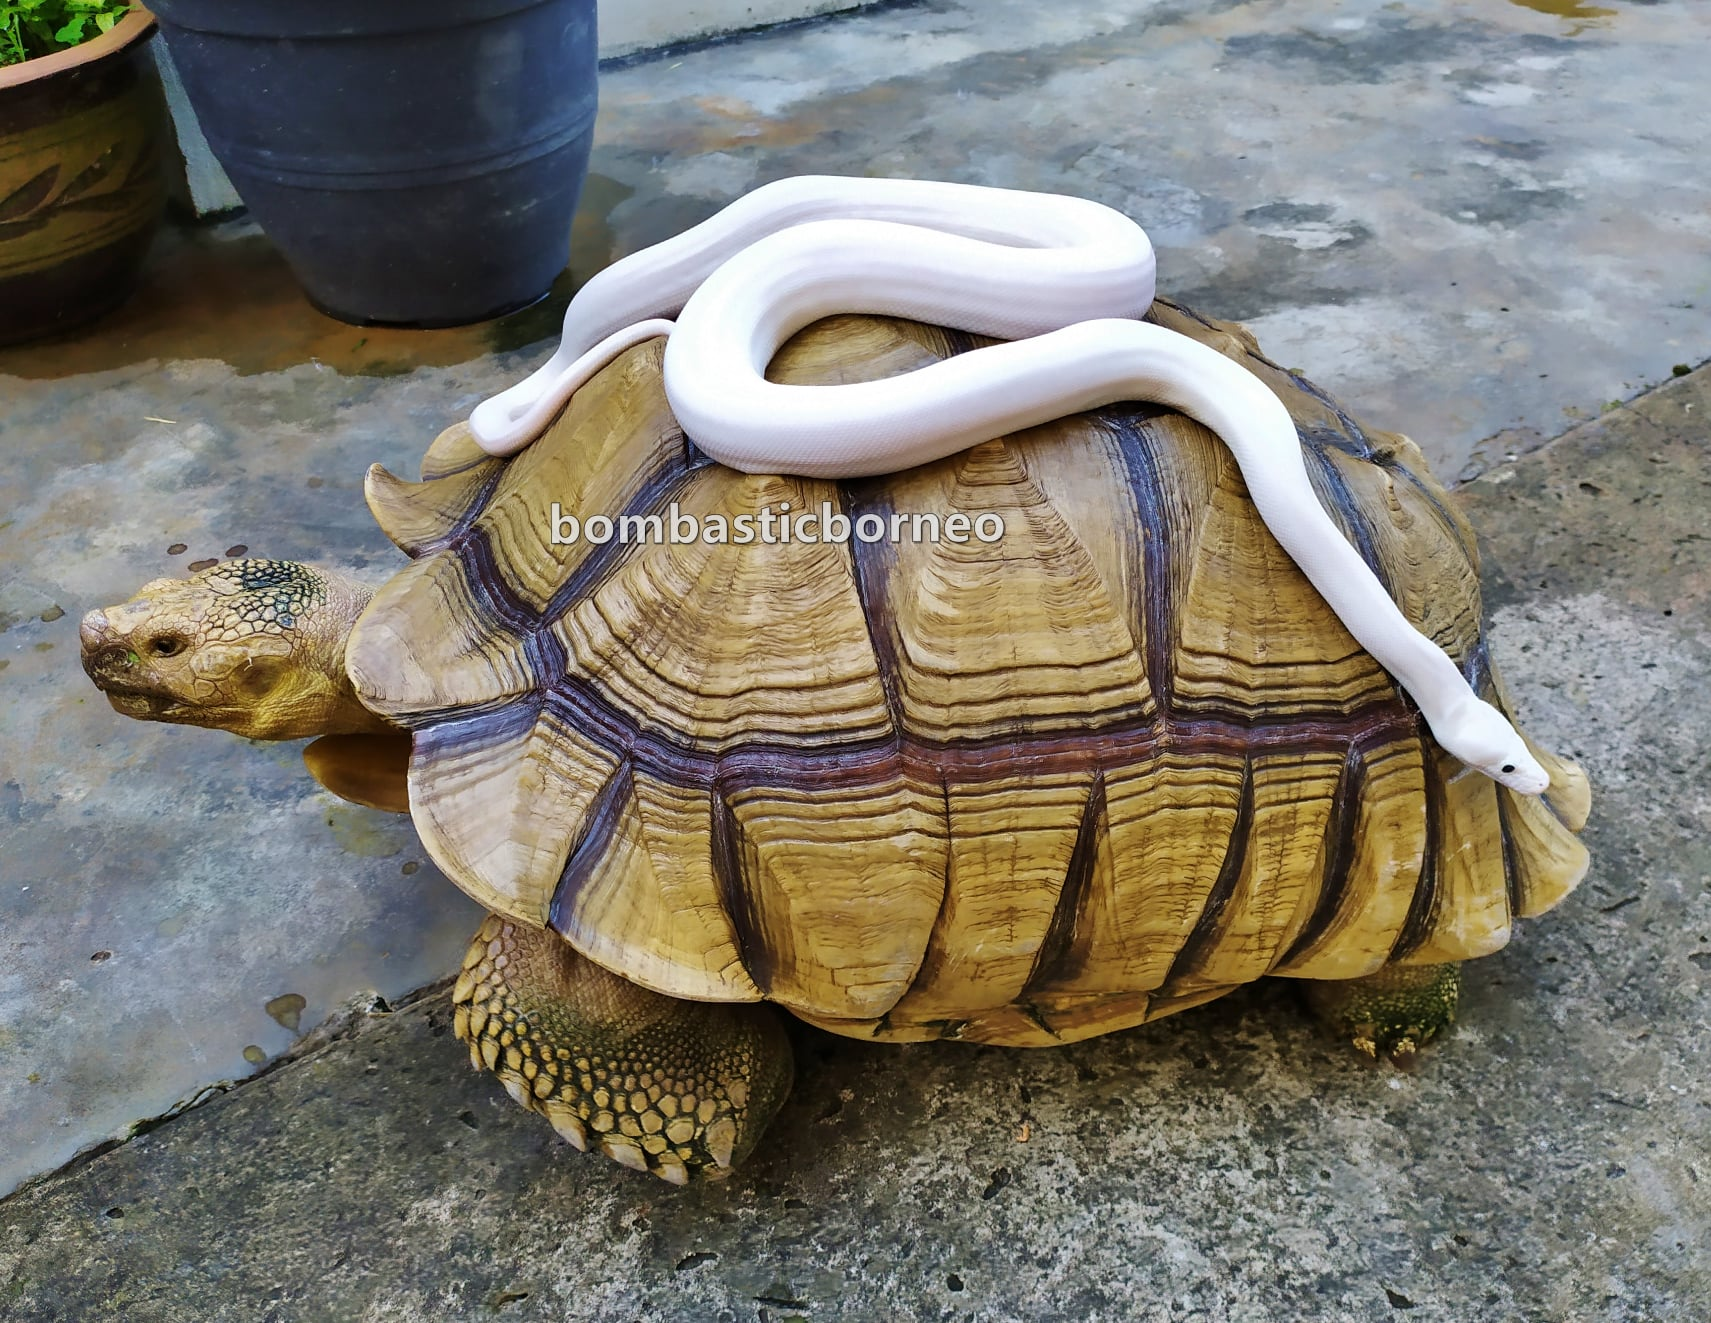 python, African spurred tortoise, Centrochelys sulcata, Kura-kura, Haiwan Peliharaan Eksotik, pets shop, hobby, Kho Animal Enterprise, Malaysia, Tourism, tourist attraction, travel guide, 婆罗洲马来西亚游踪, 砂拉越古晋嗜好, 苏卡达陆龟,象龟宠物